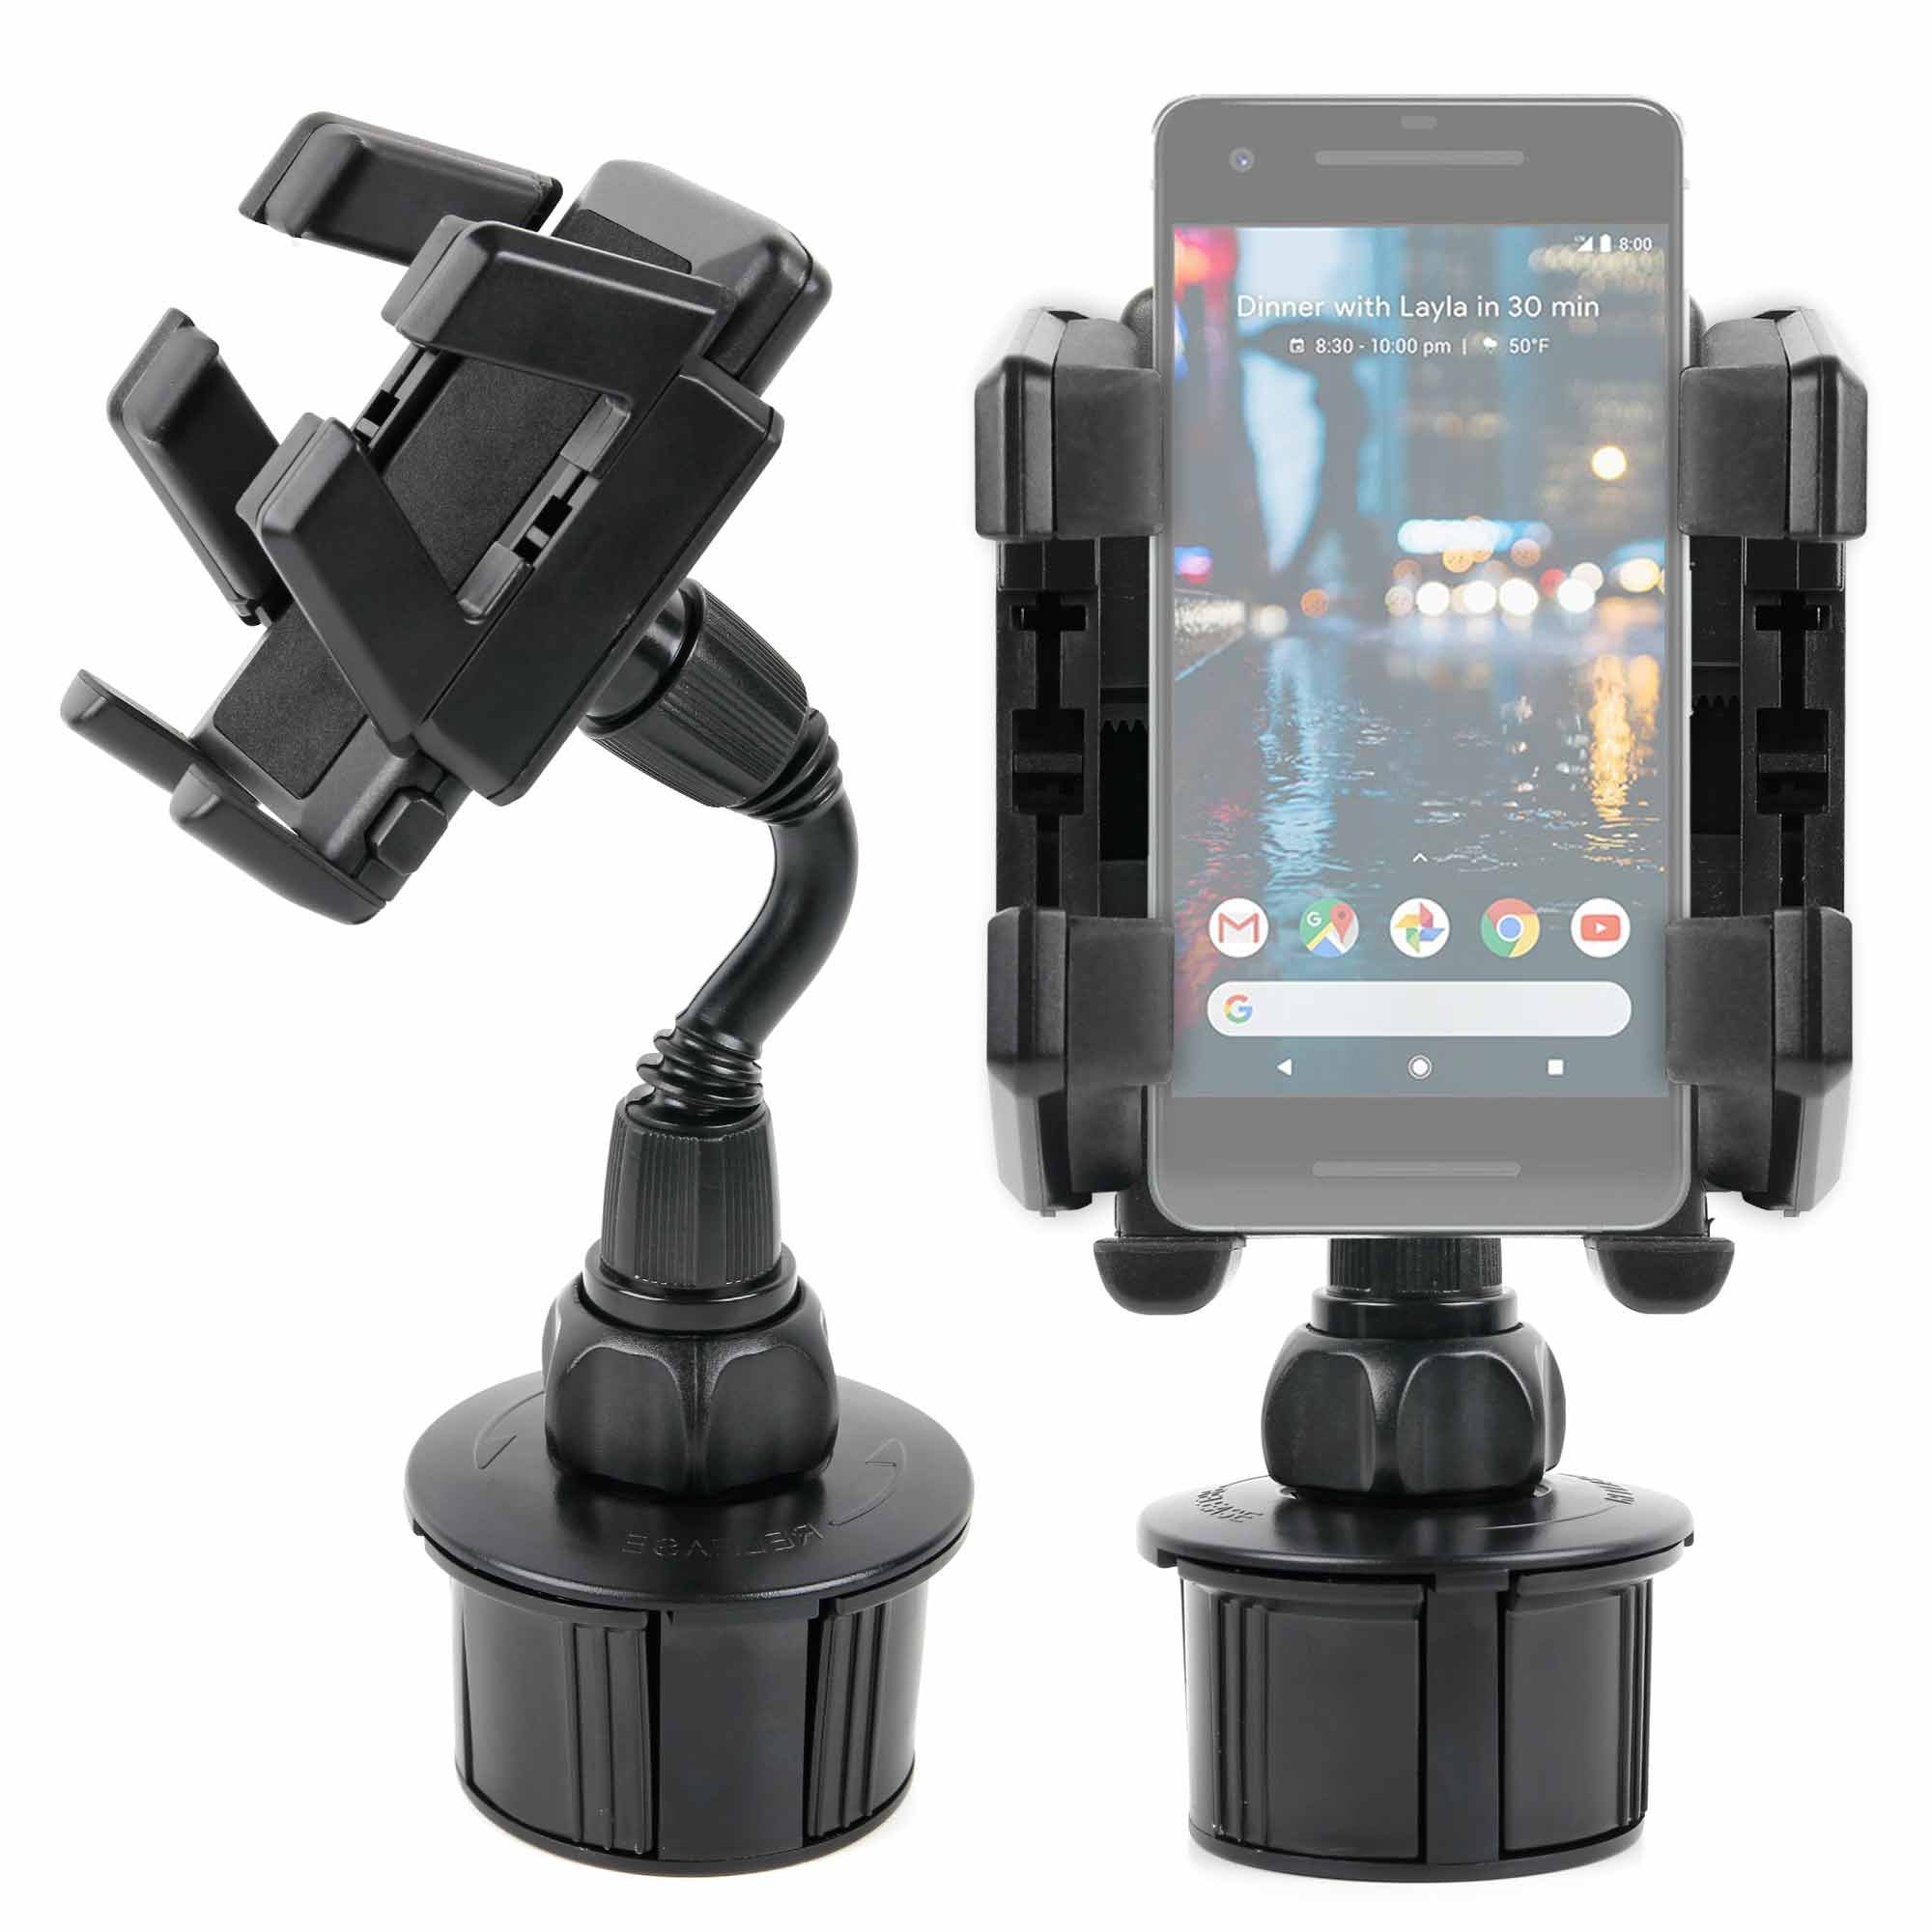 DURAGADGET Shake-Proof, Shock-Absorbing in-Car Cup Holder Mount/Holder with Rotatable Mount - Compatible with The Google Pixel | Pixel 2 | Pixel XL | Pixel 2 XL